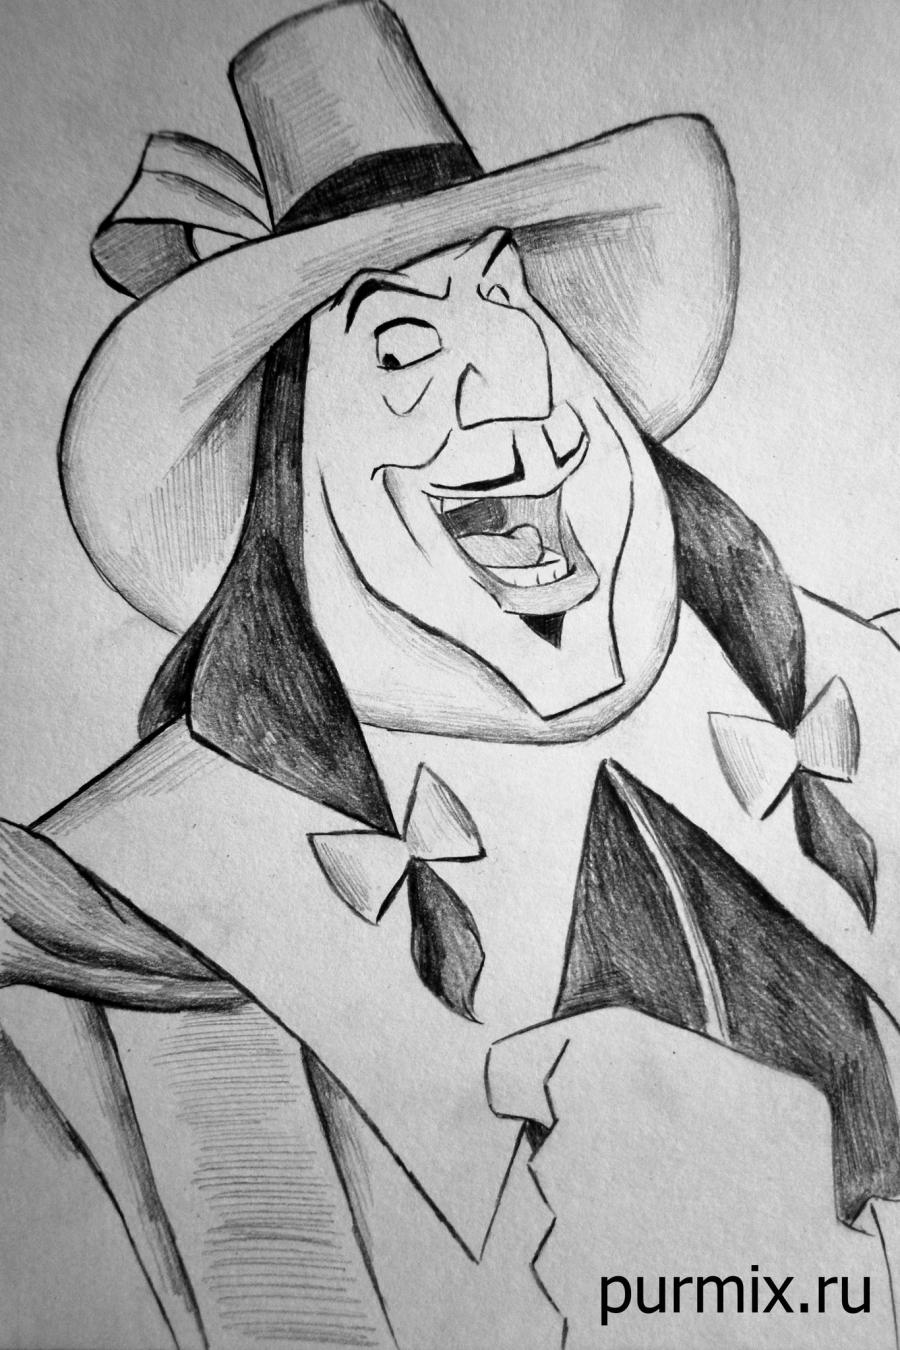 How to draw Radcliff from Pokakhontas with a simple pencil step by step